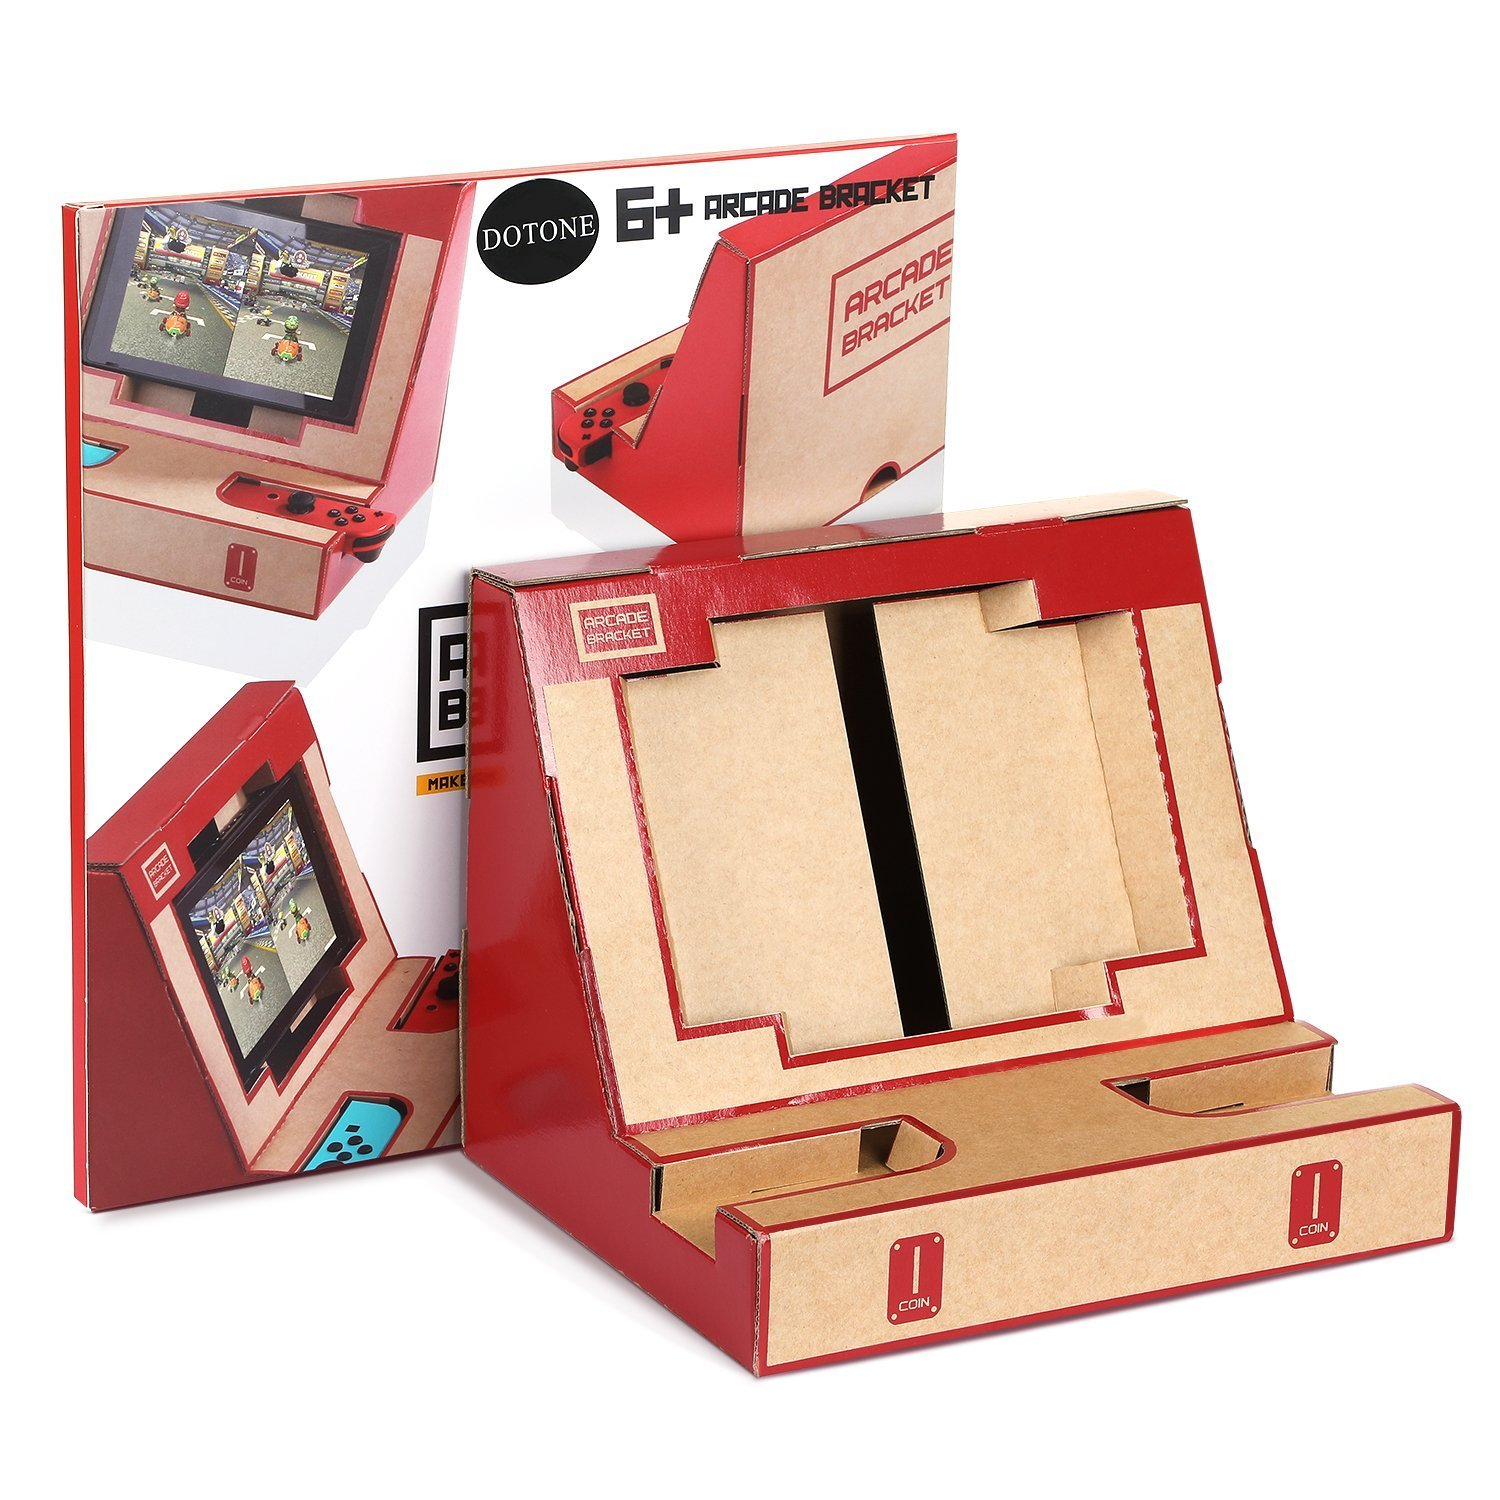 Cardboard Toy Stand for Nintendo Switch Accessories Variety Kit Customization Cardboard Sheets Arcade Bracket Paper DIY Switch Holder Game Joy-con Garage [video game]